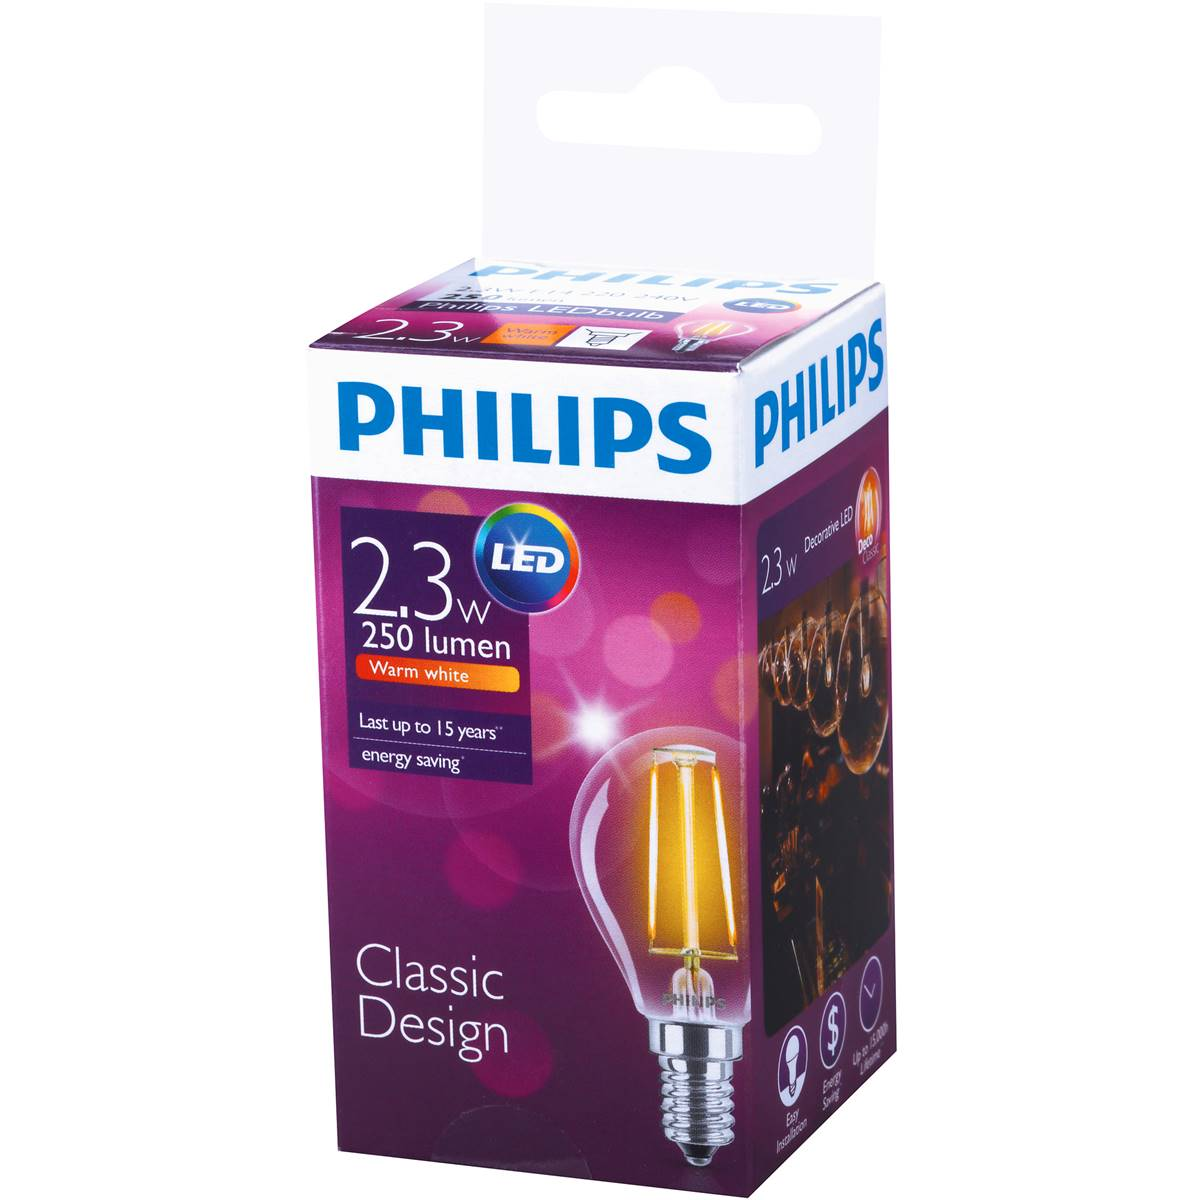 philips light Philips is a leading health technology company focused on improving people's lives and enabling better outcomes across the health continuum.